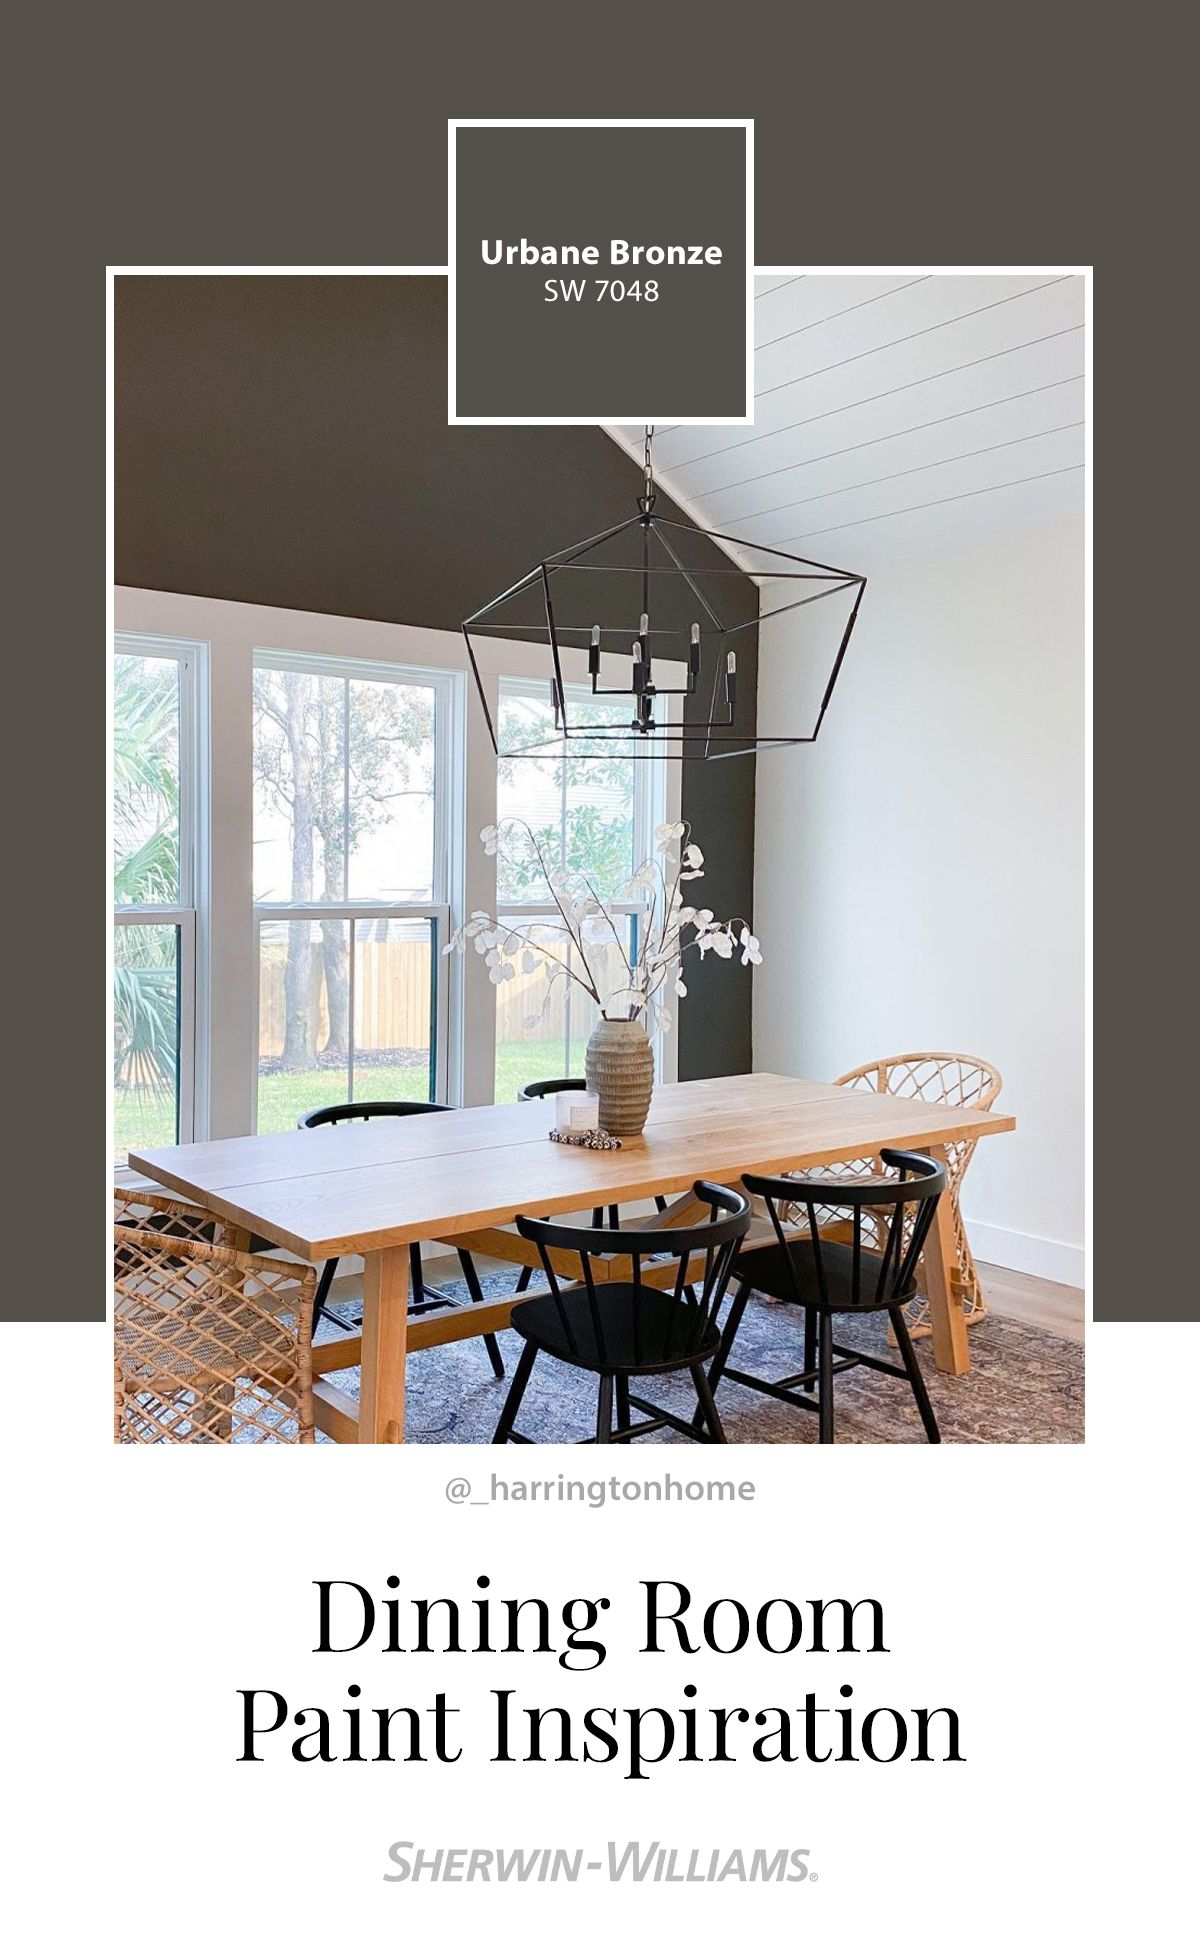 Dining Room Paint Color Inspiration, Dining Room Wall Colors 2021